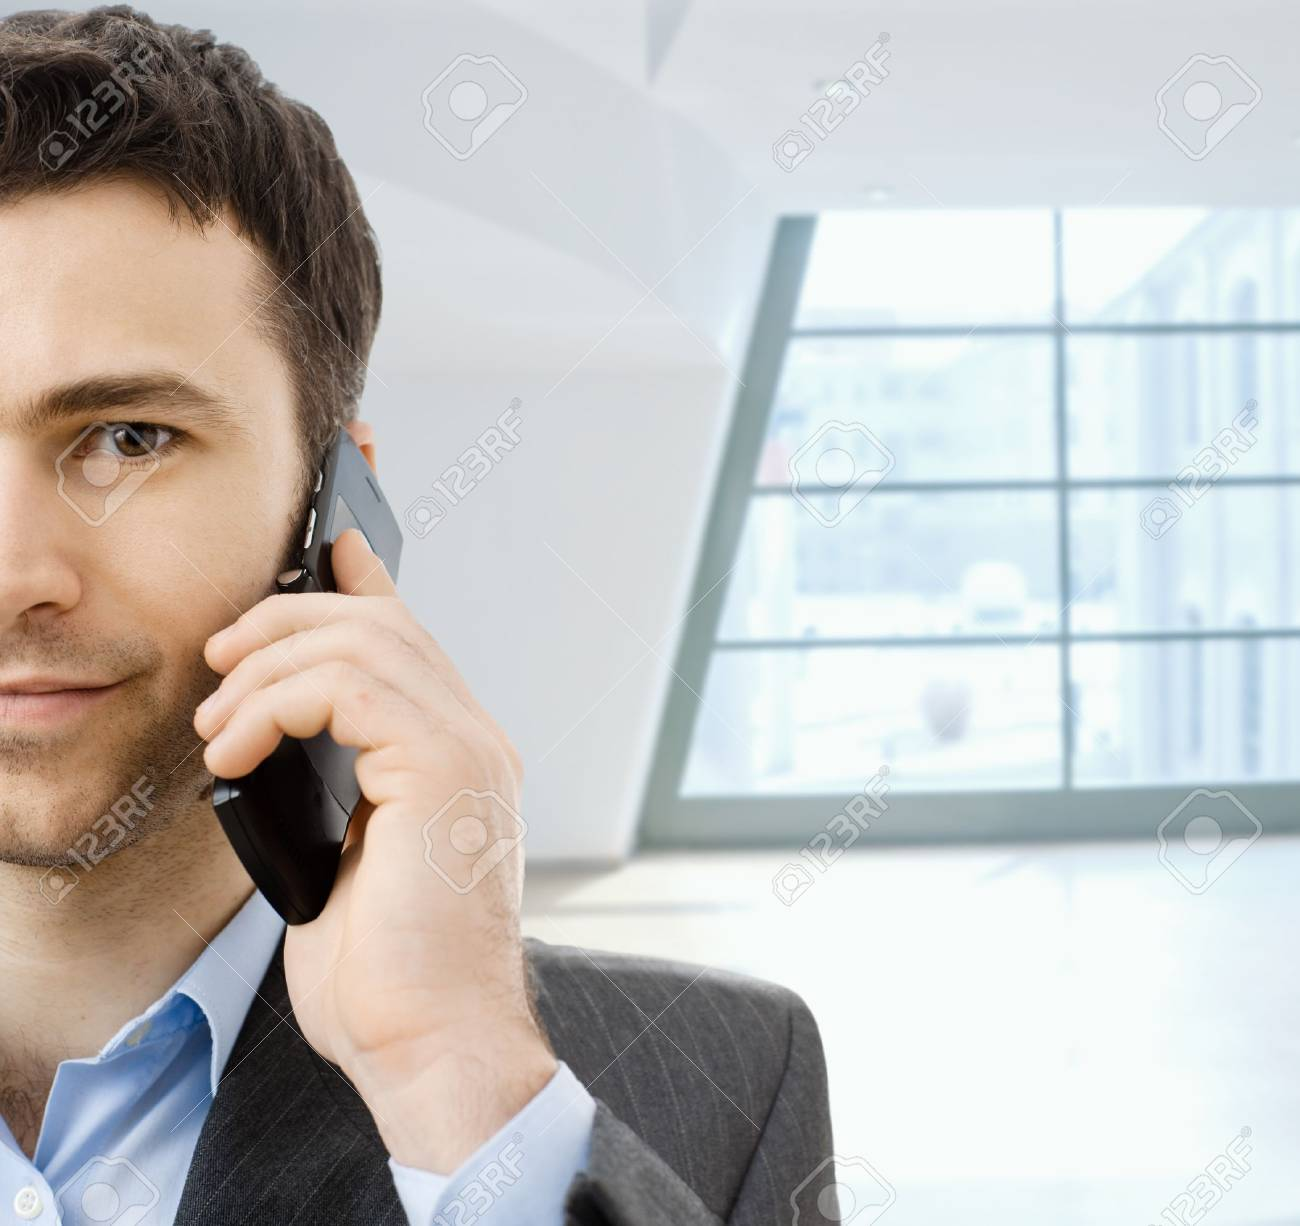 Closeup portrait of casual businessman talking on mobile phone, standing in office lobby. Stock Photo - 4560105